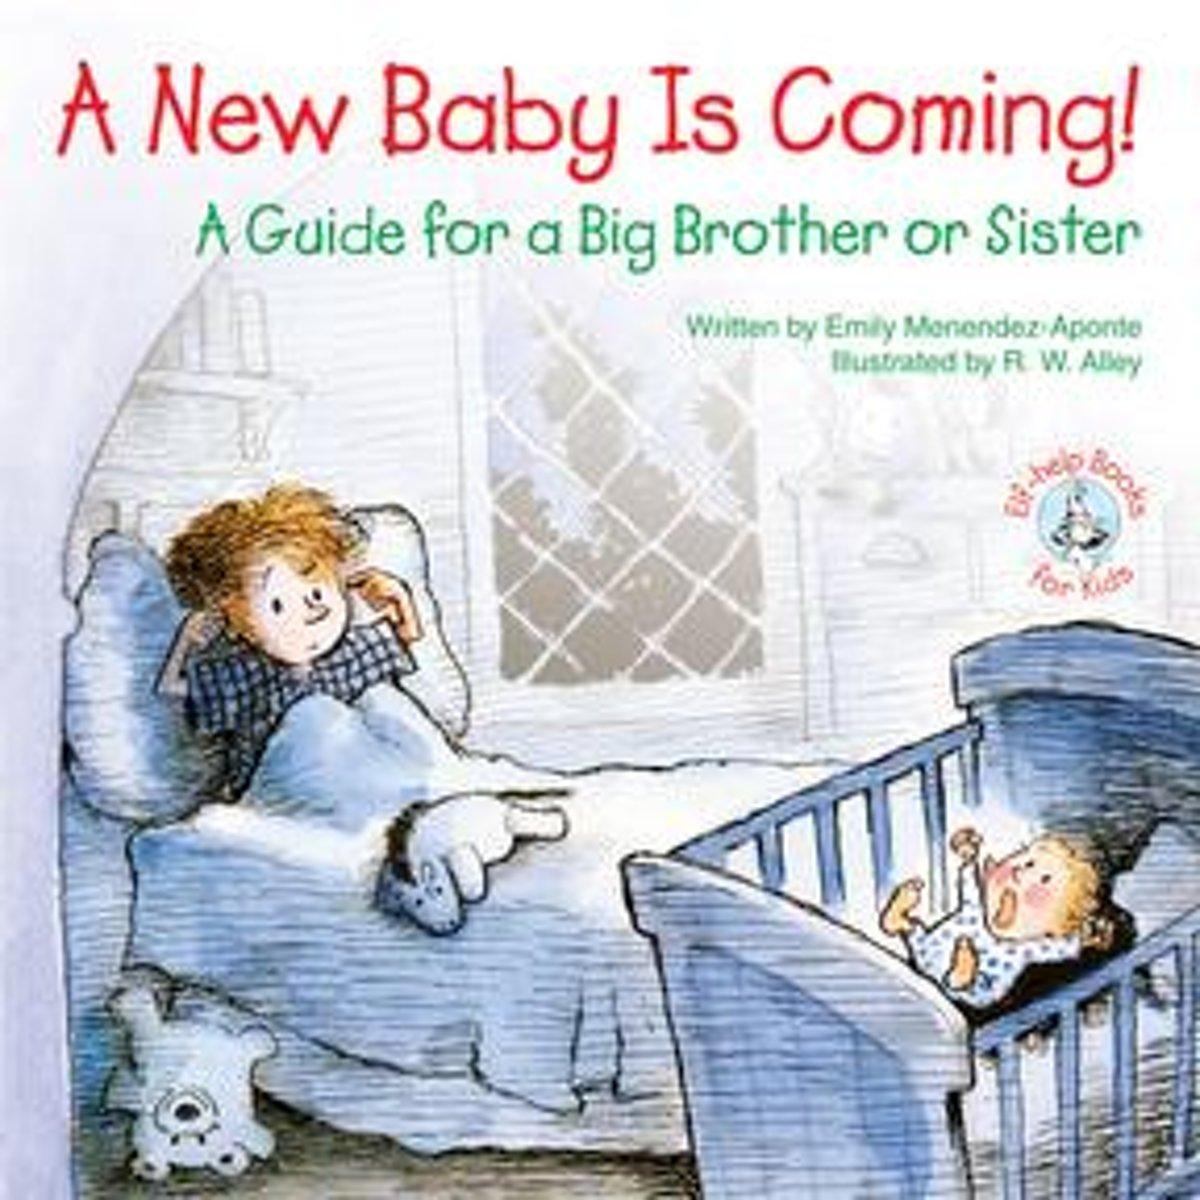 A New Baby Is Coming!